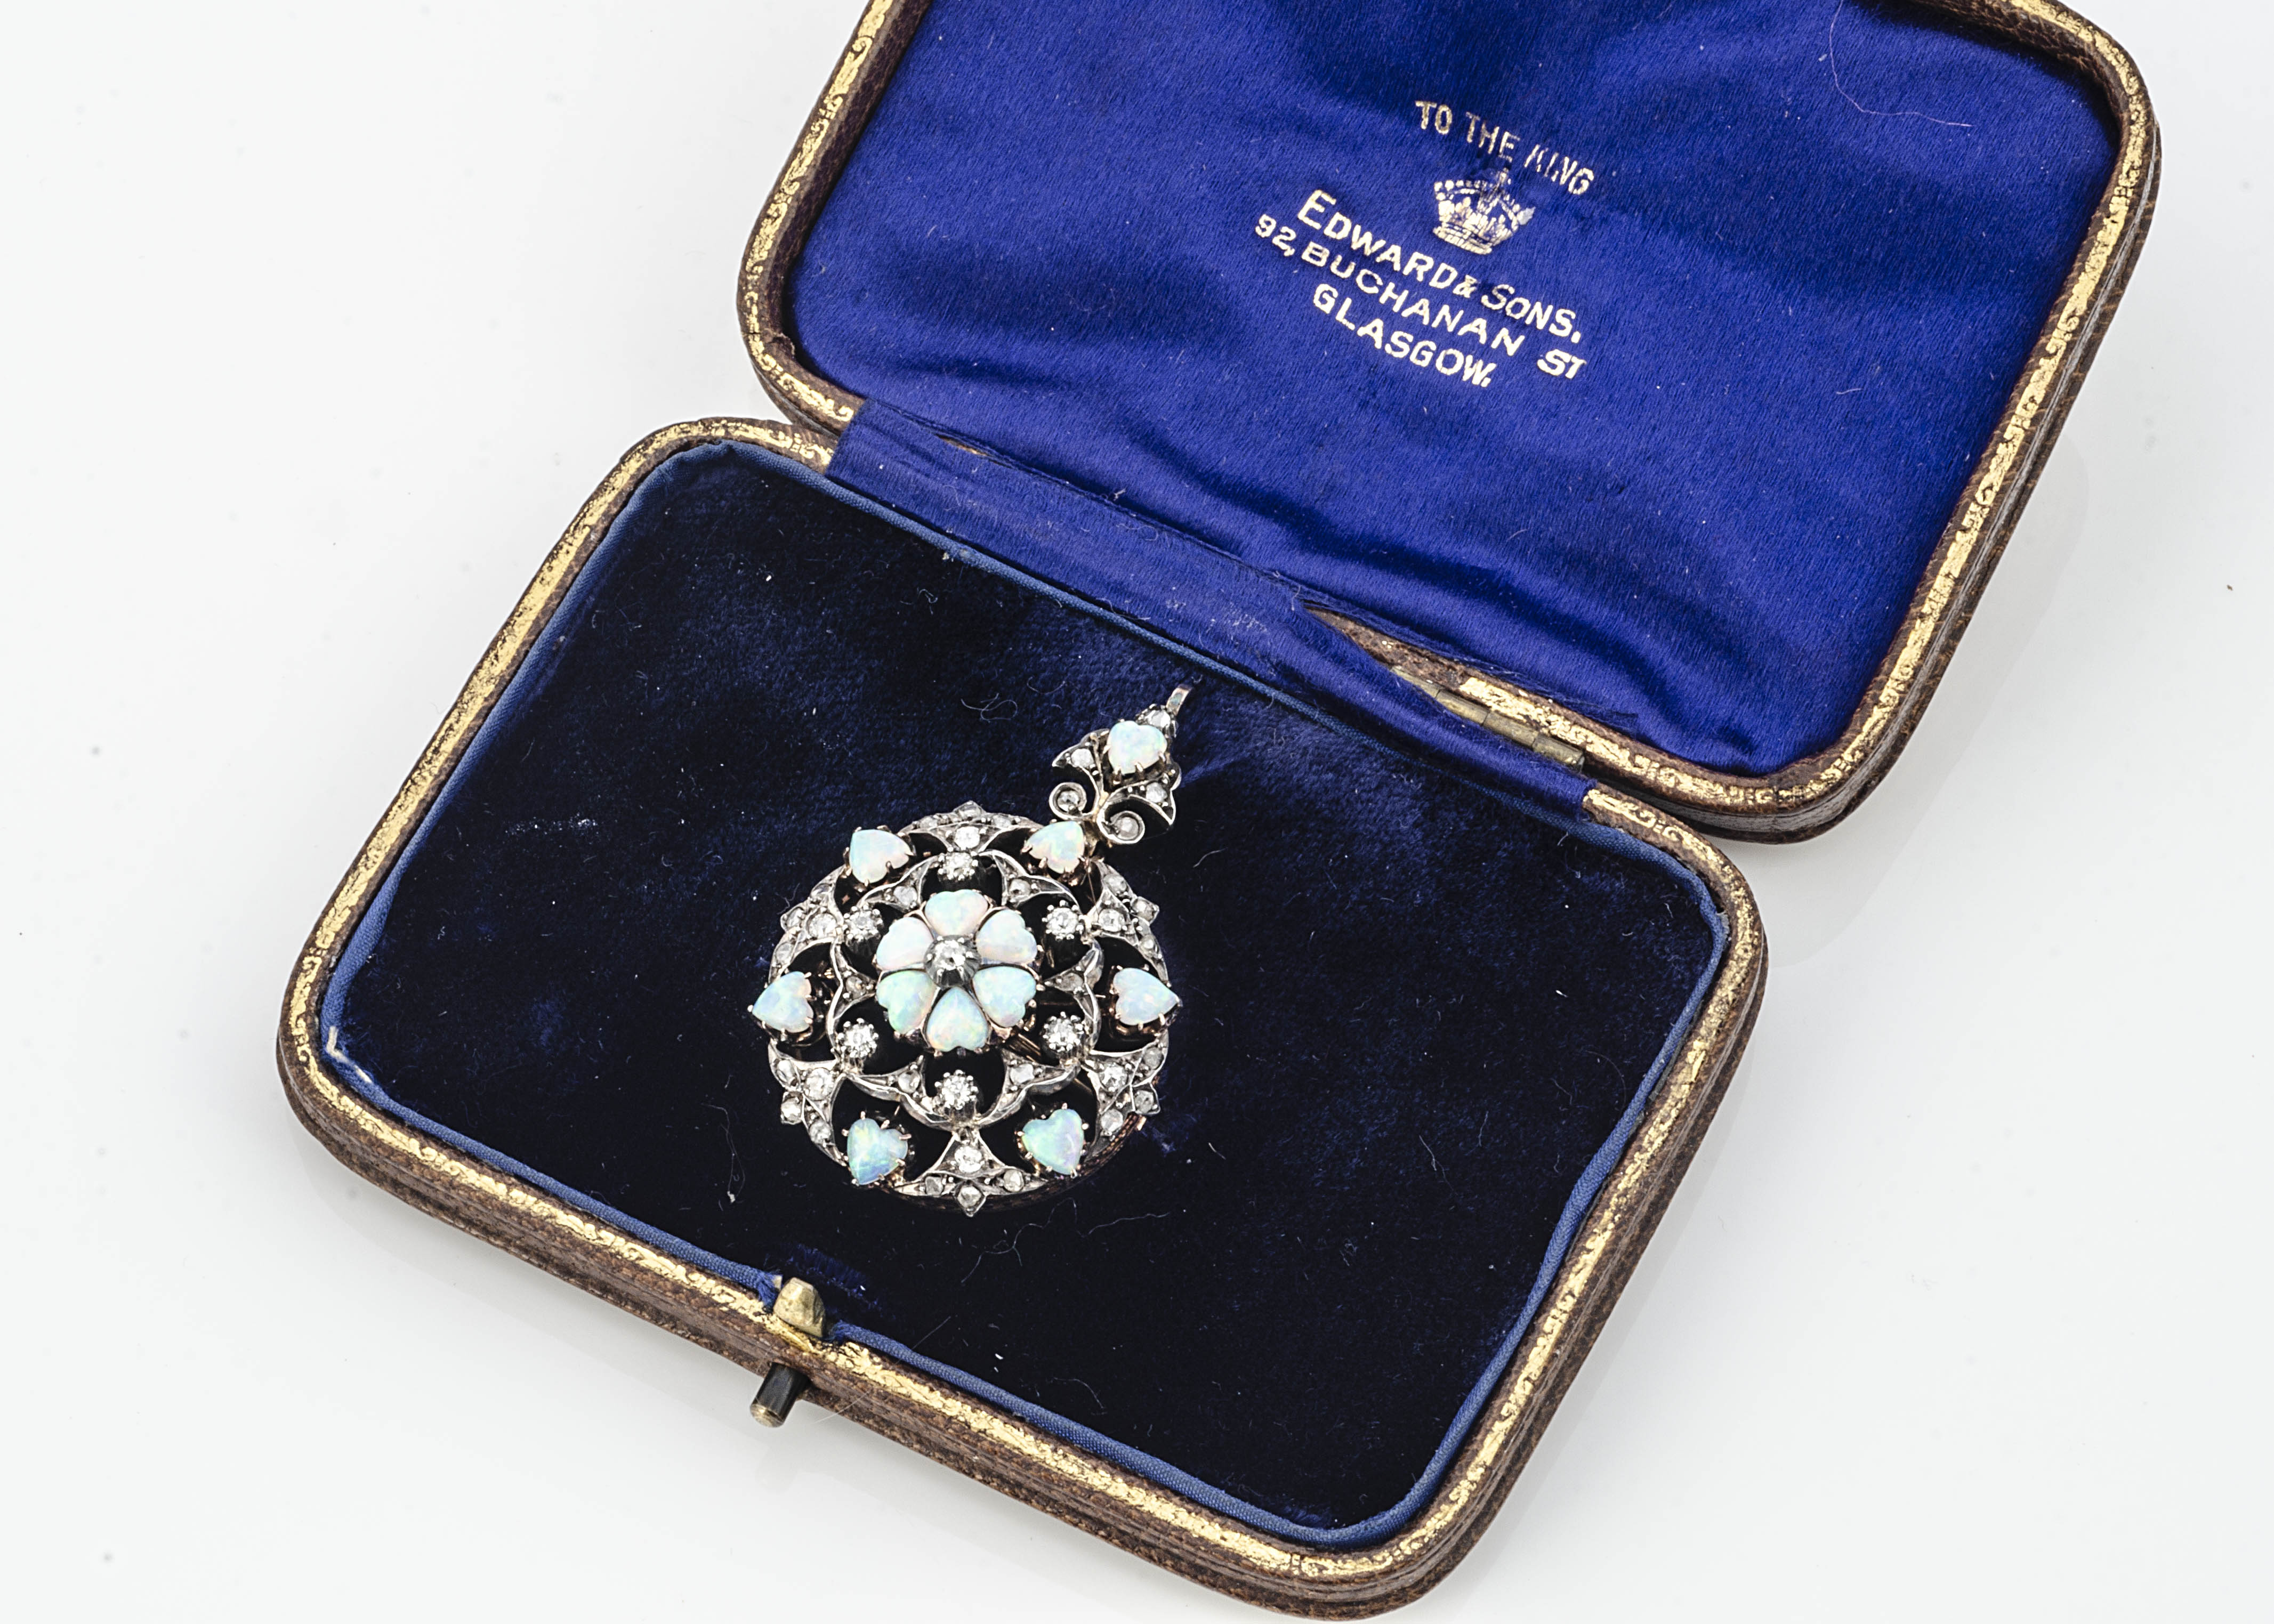 An Edwardian circular opal and diamond brooch or pendant, of target shape with central flower head